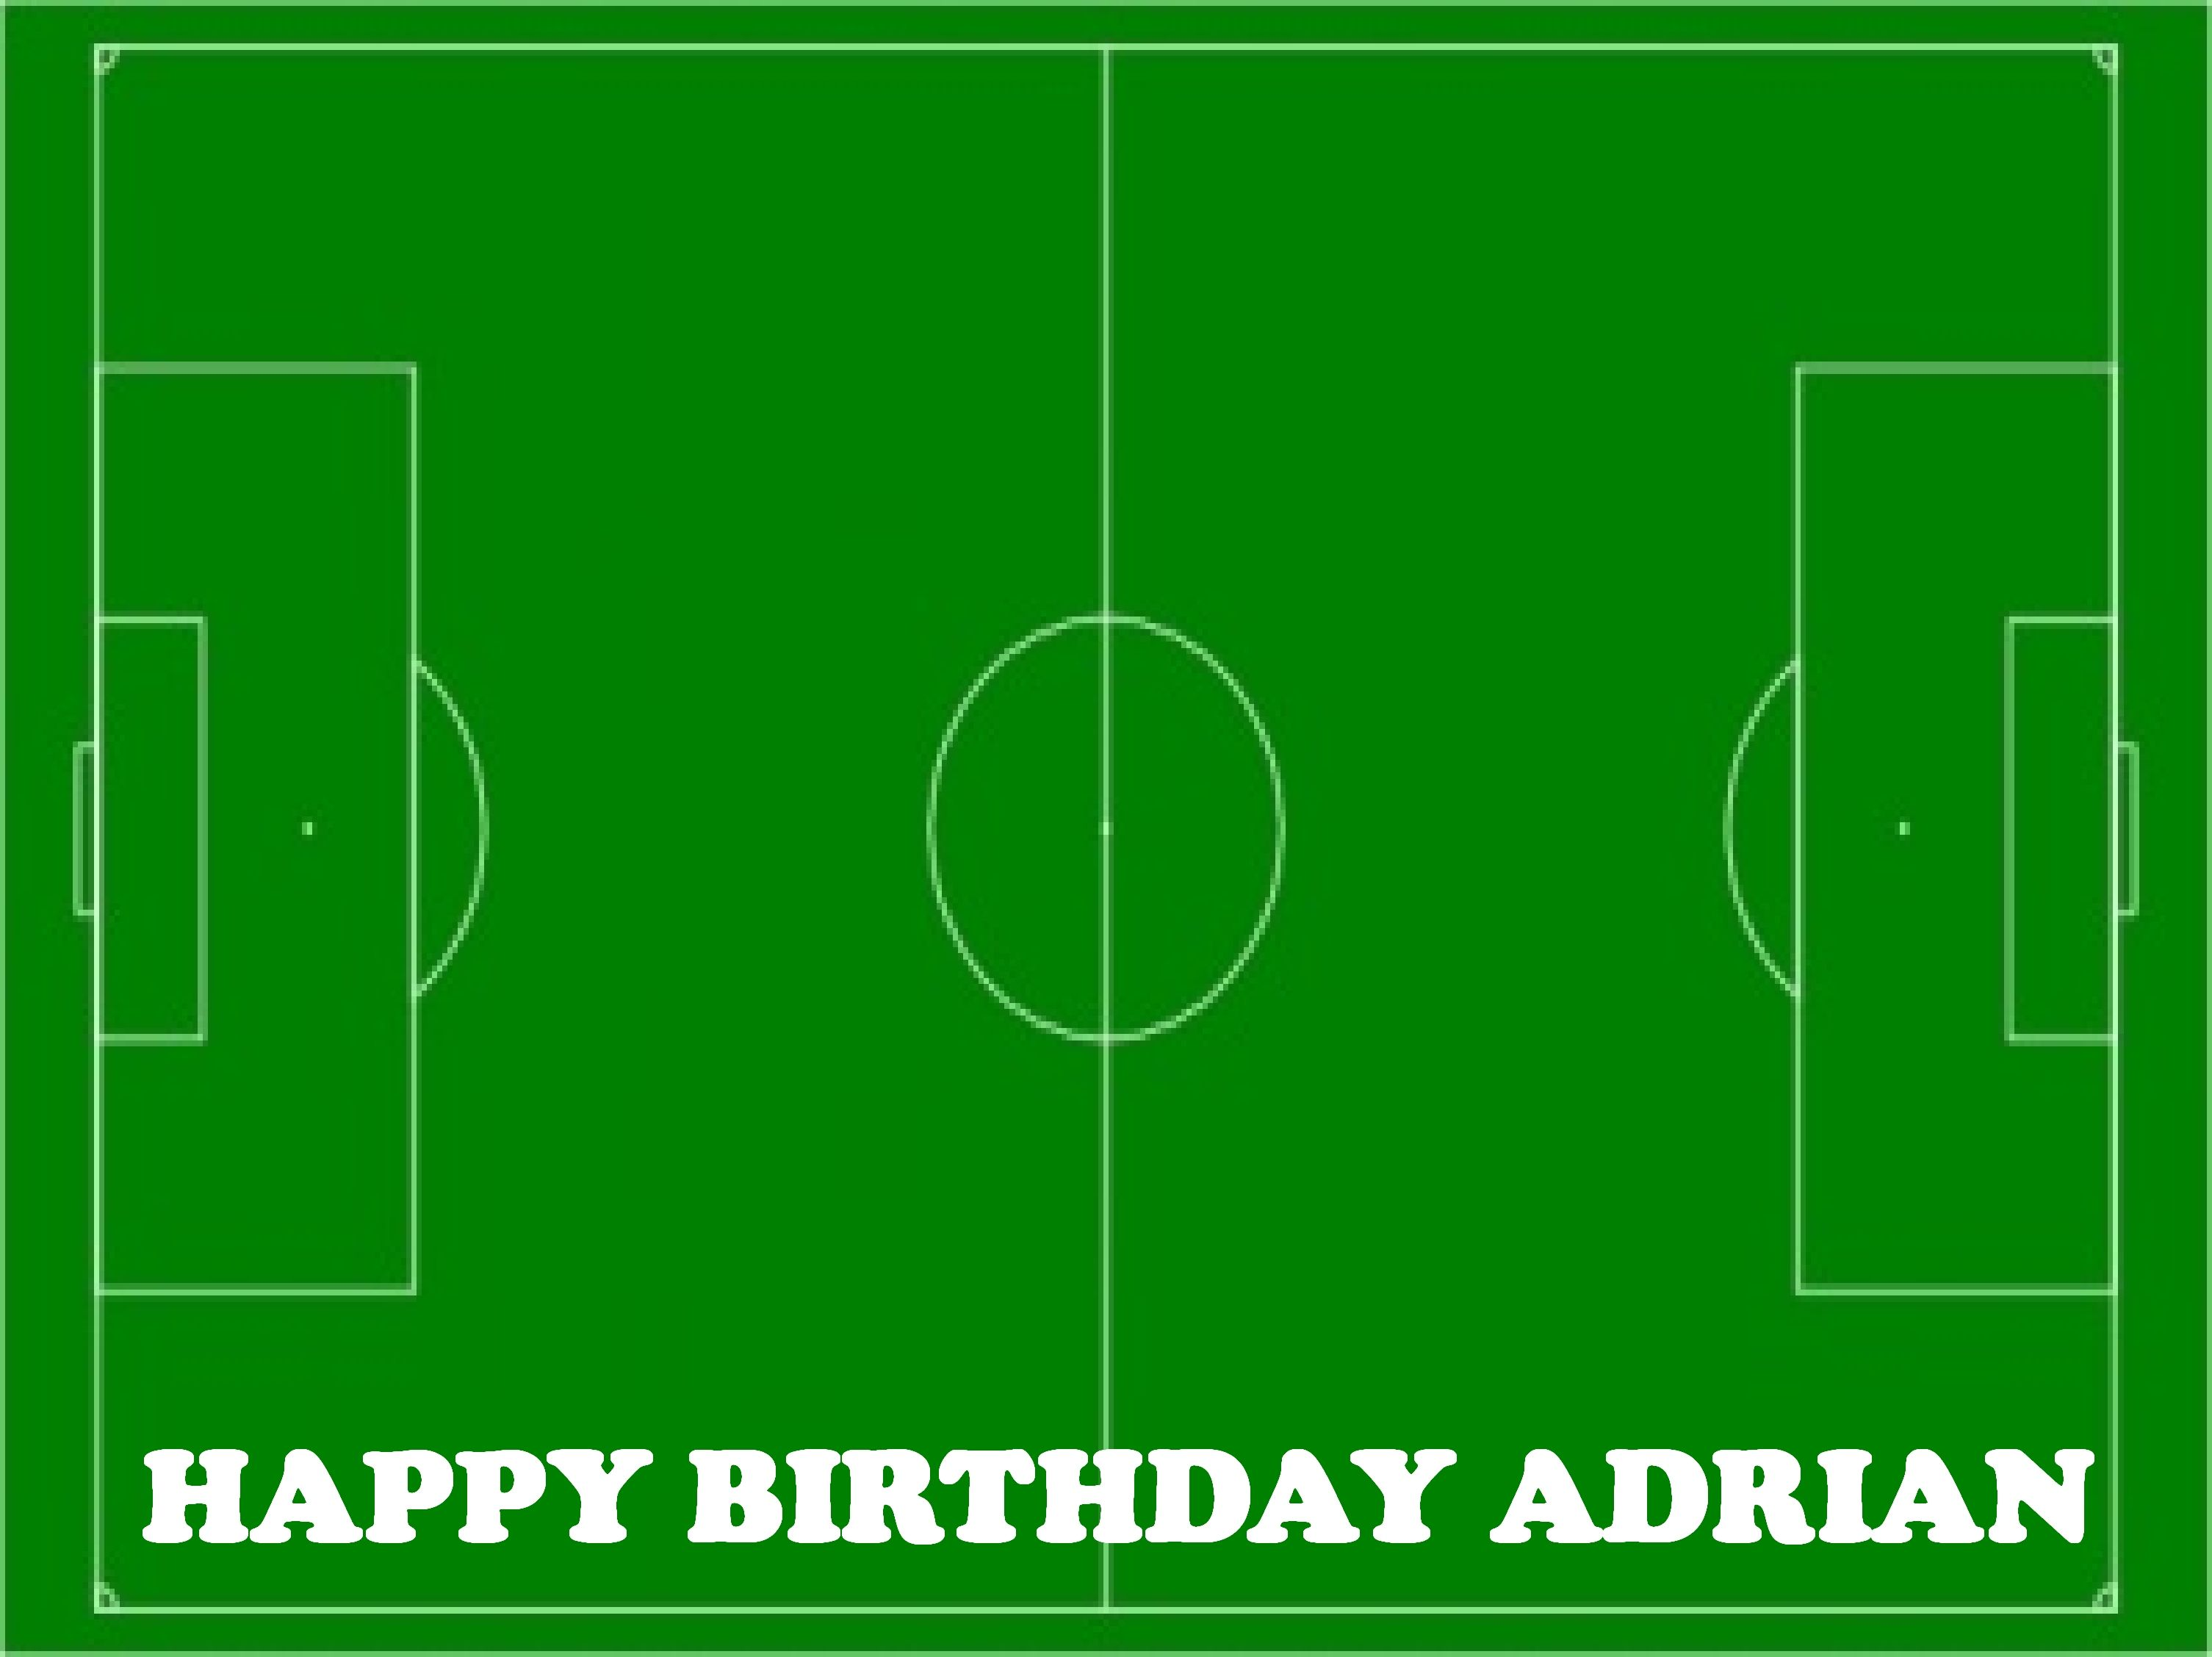 Football Pitch Cake Topper Football Pitch Edible Cake